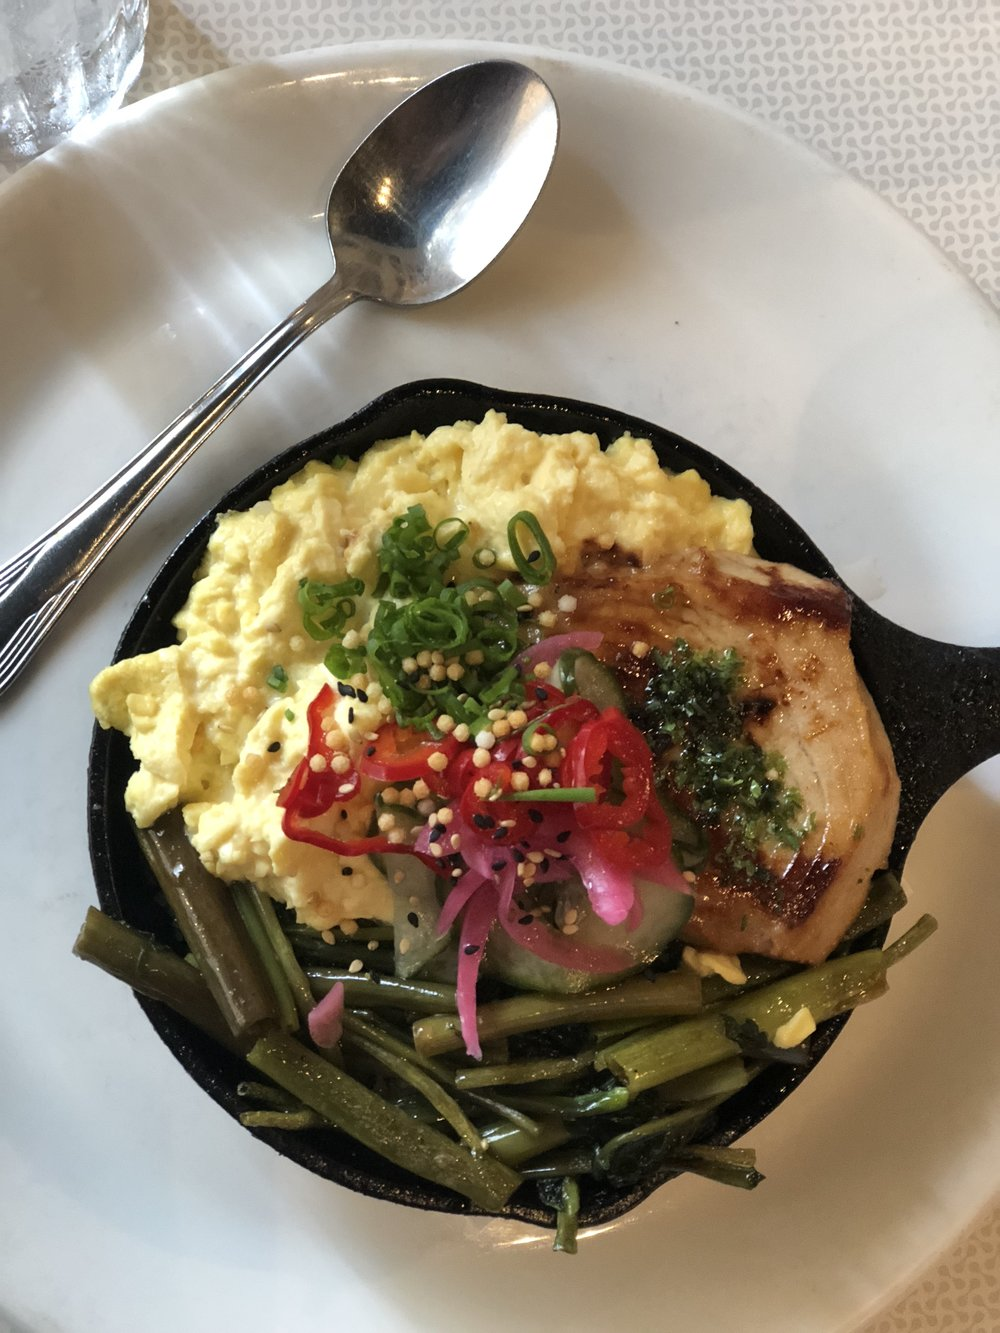 Eggs, fish and greens with homemade pickles for brunch.